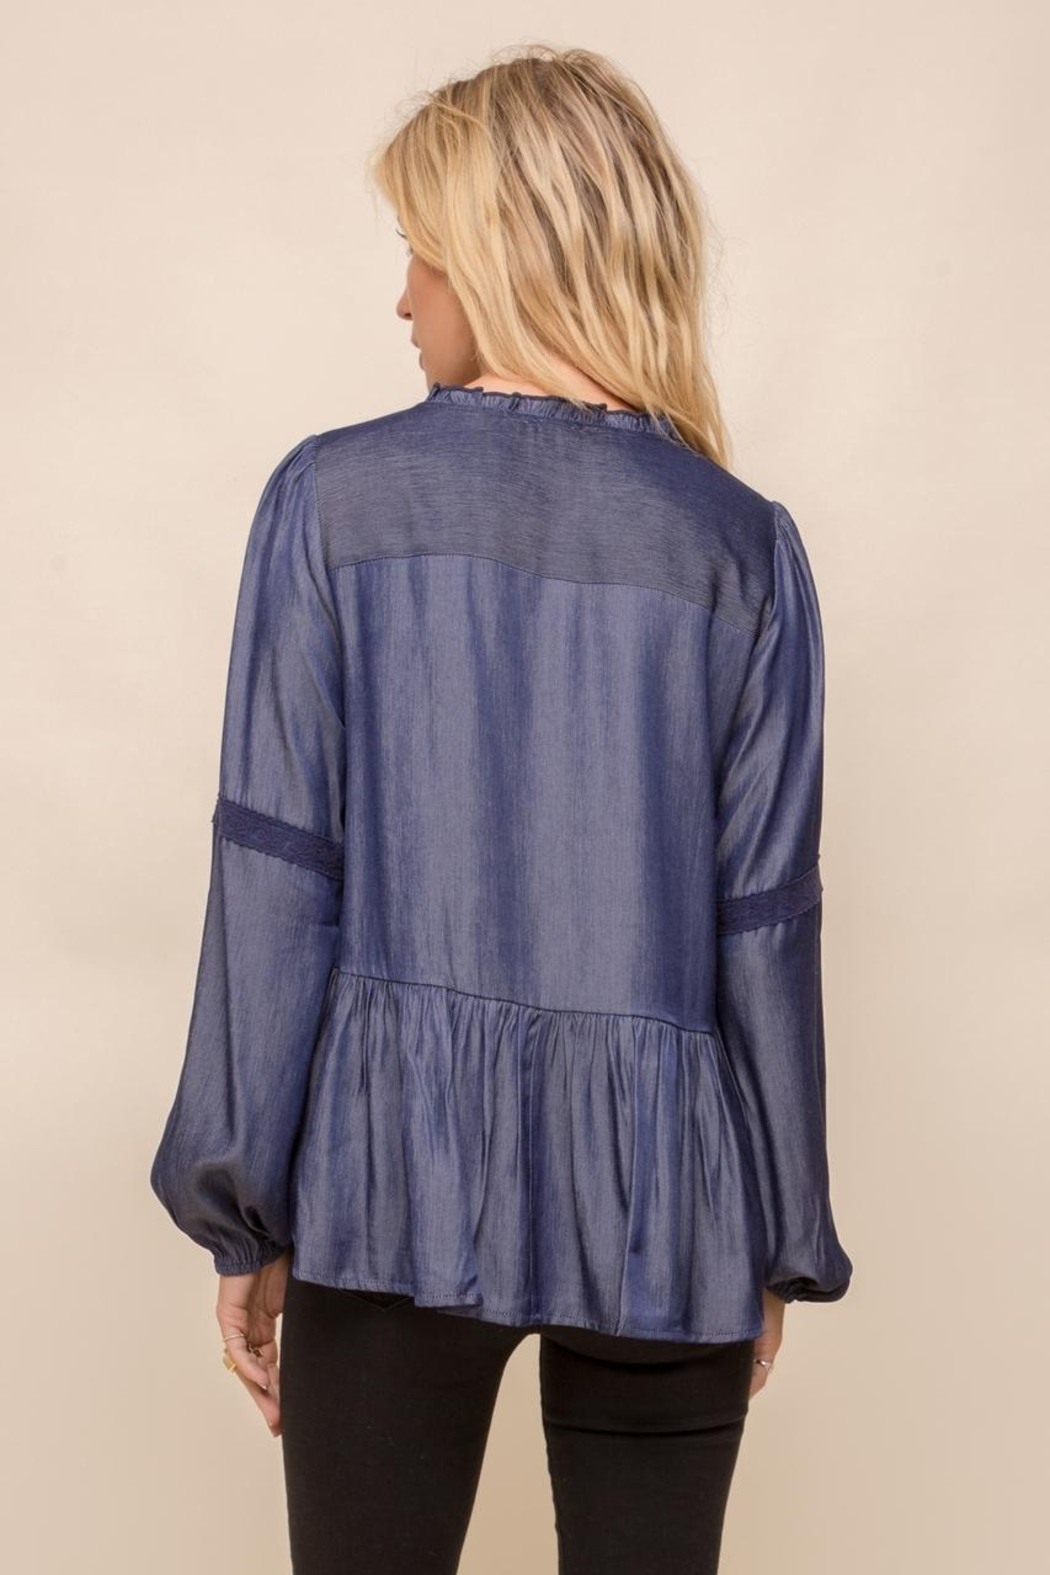 Hem & Thread Lace Trim Button Up Blouse - Front Full Image